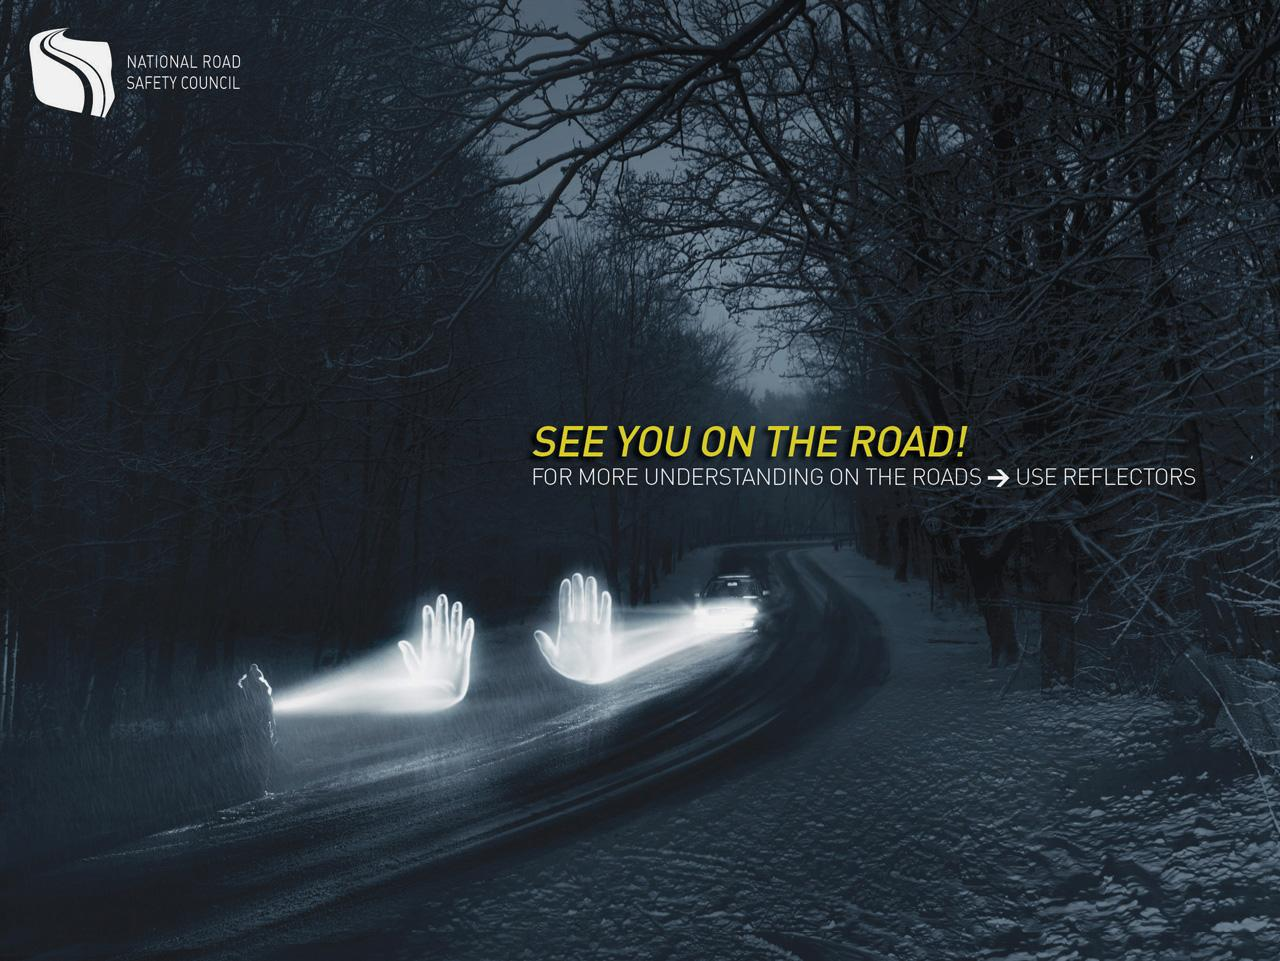 The Polish National Road Safety Council Print Ad -  See you on the road, 1